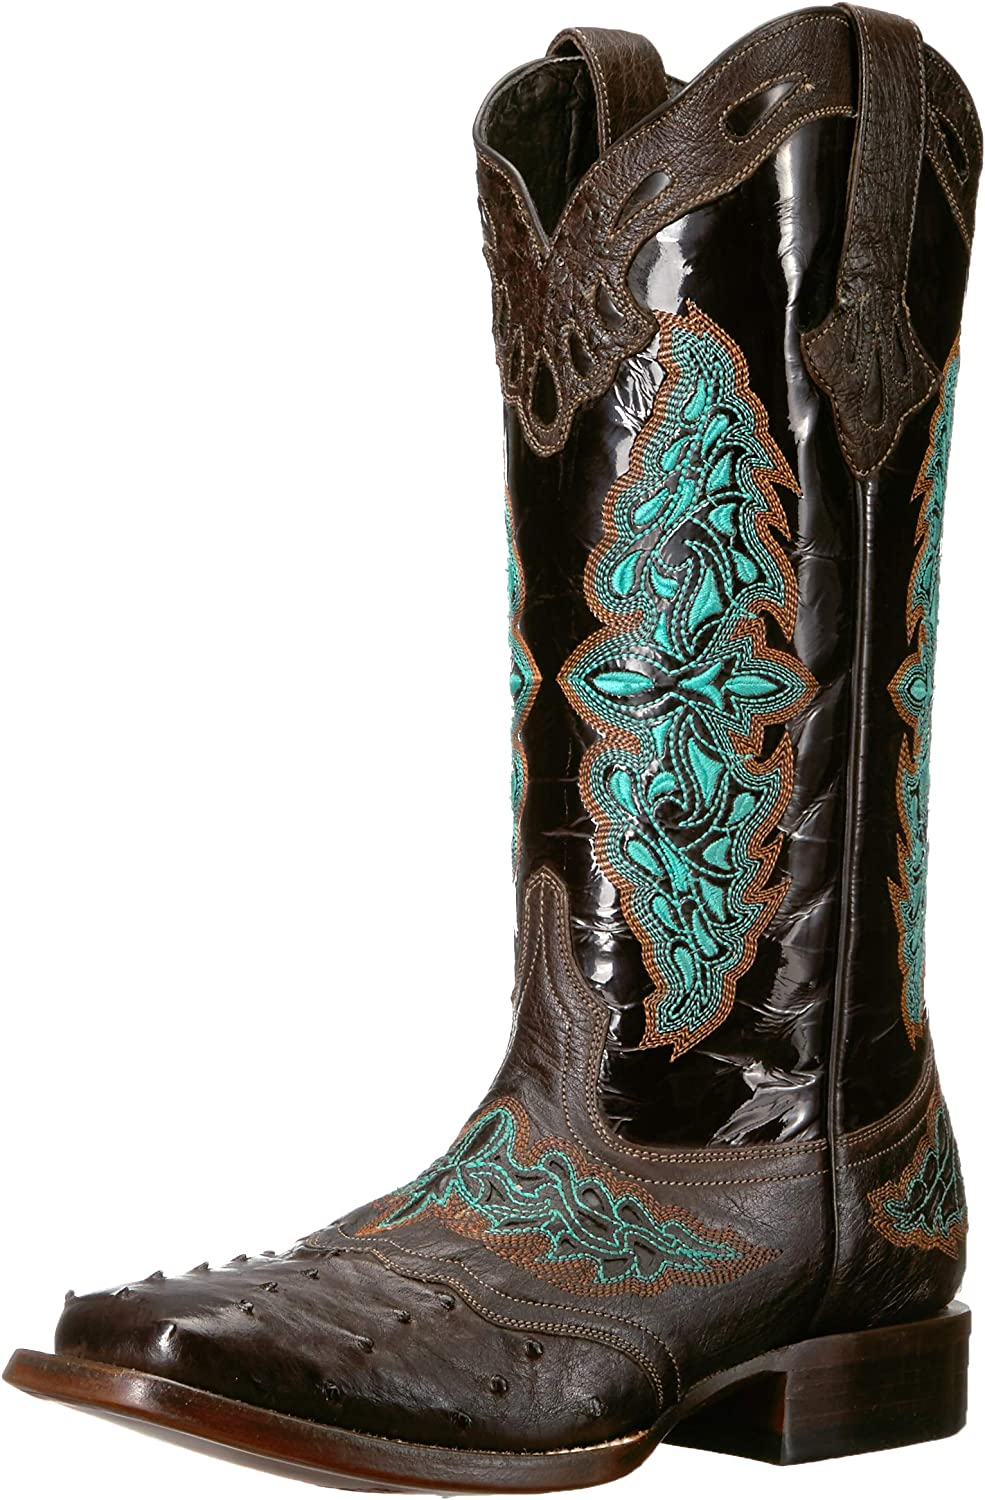 Lucchese Bootmaker Women's Amberlyn Ostrich Embroidery Square Toe Cowboy Boots Western